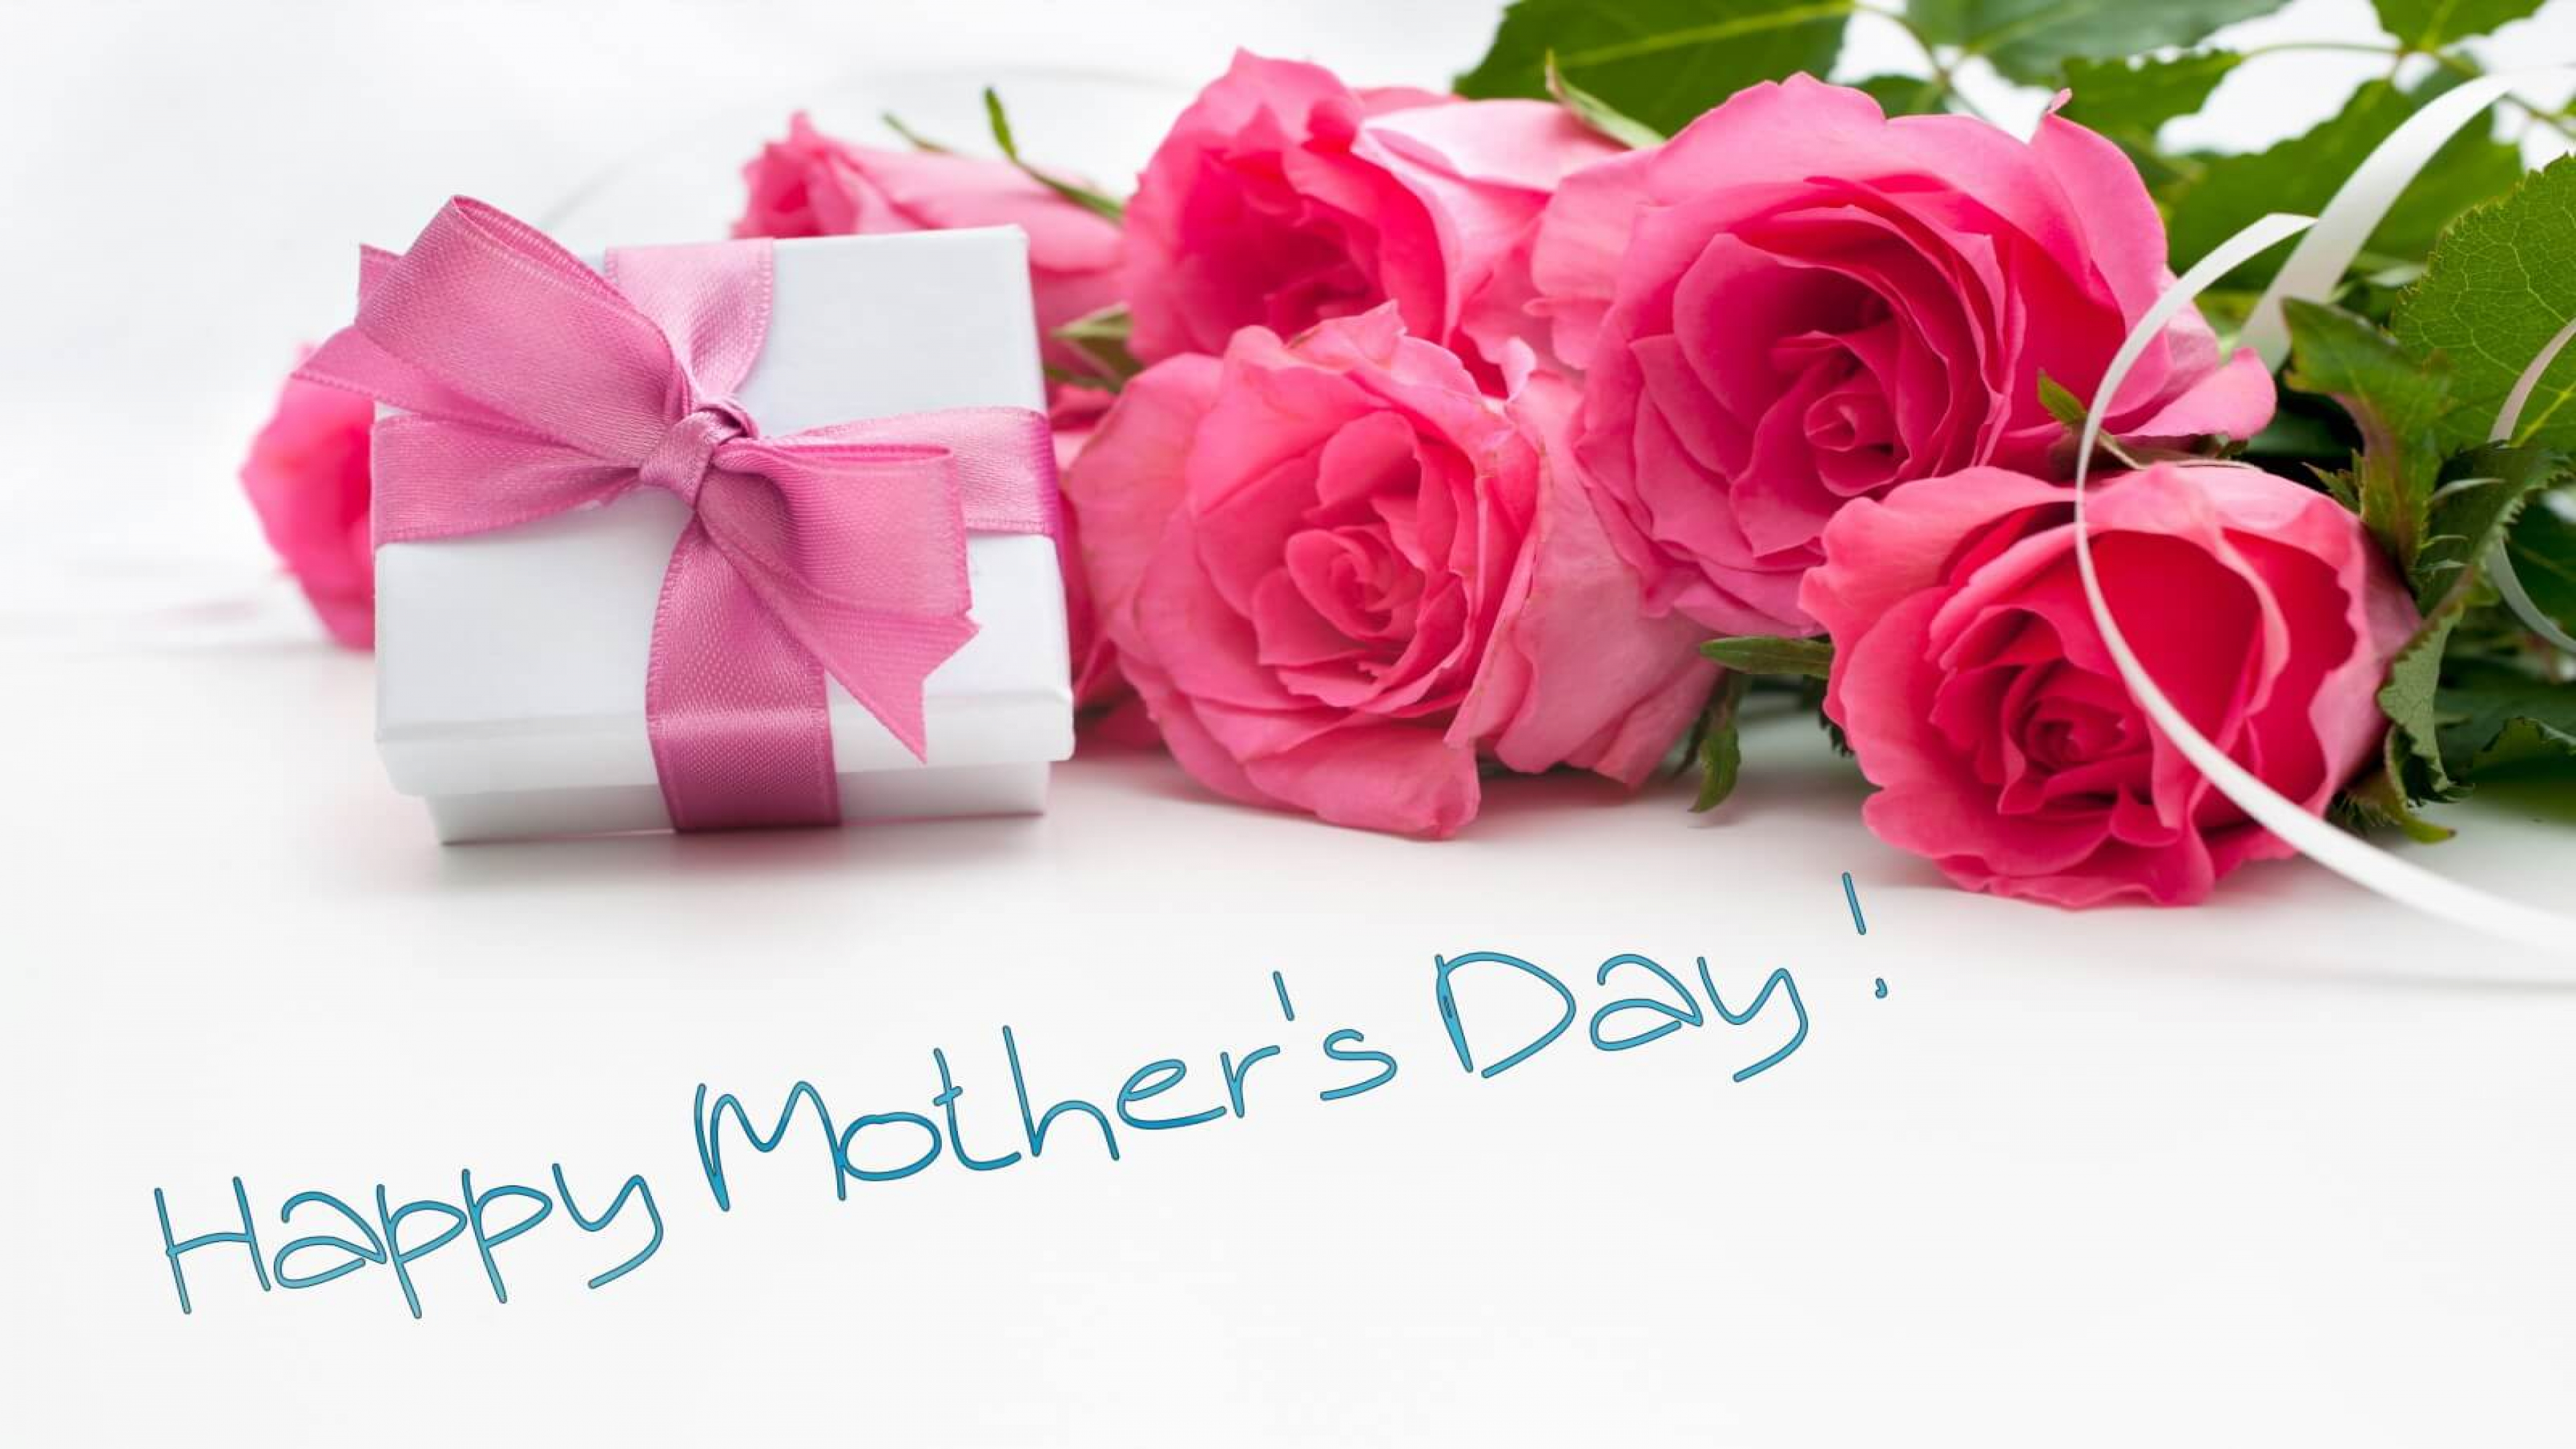 Happy Mothers Day Gift HD Wallpaper for Desktop